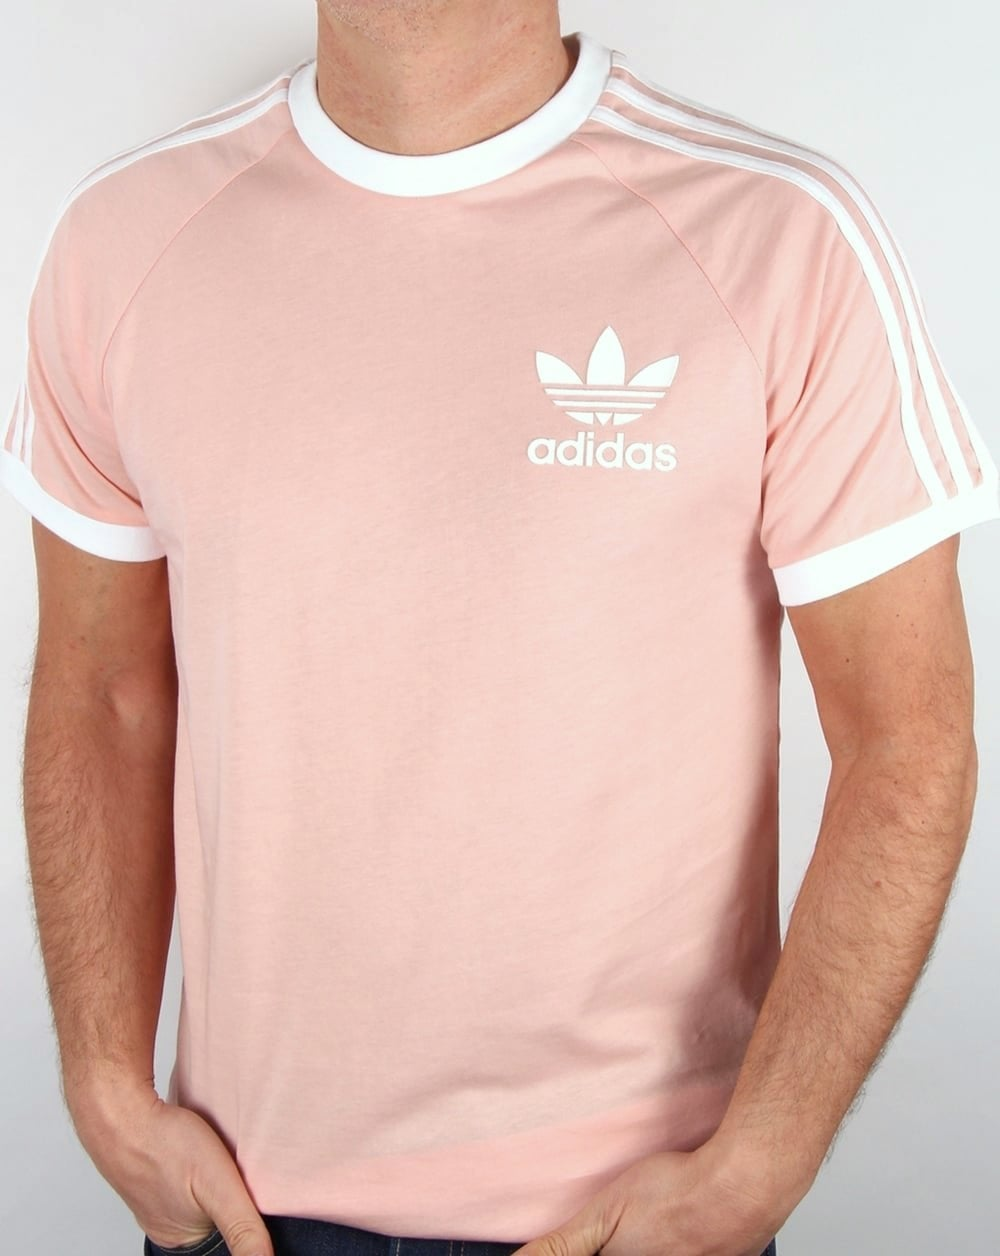 adidas Originals Adidas Originals Retro 3 Stripe T Shirt Light Pink